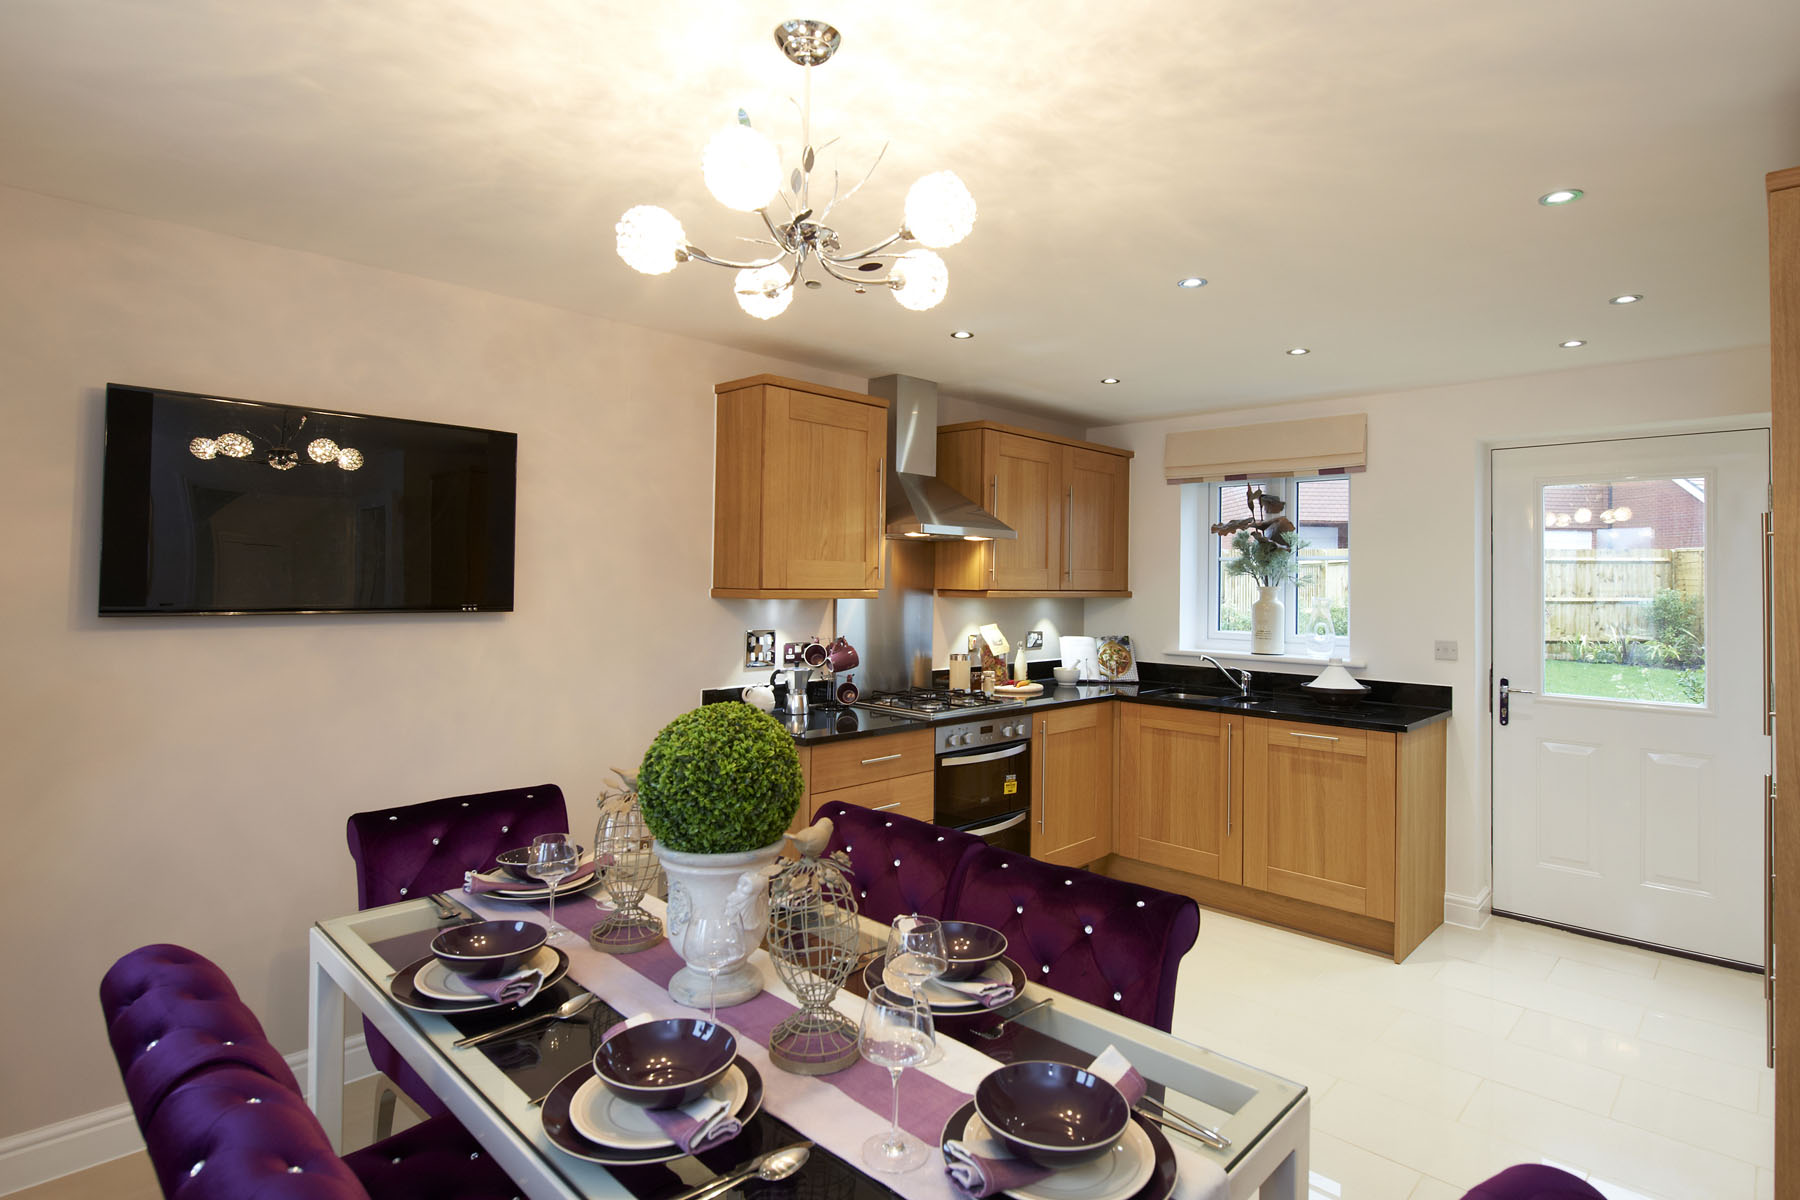 A typical Taylor Wimpey kitchen/dining area